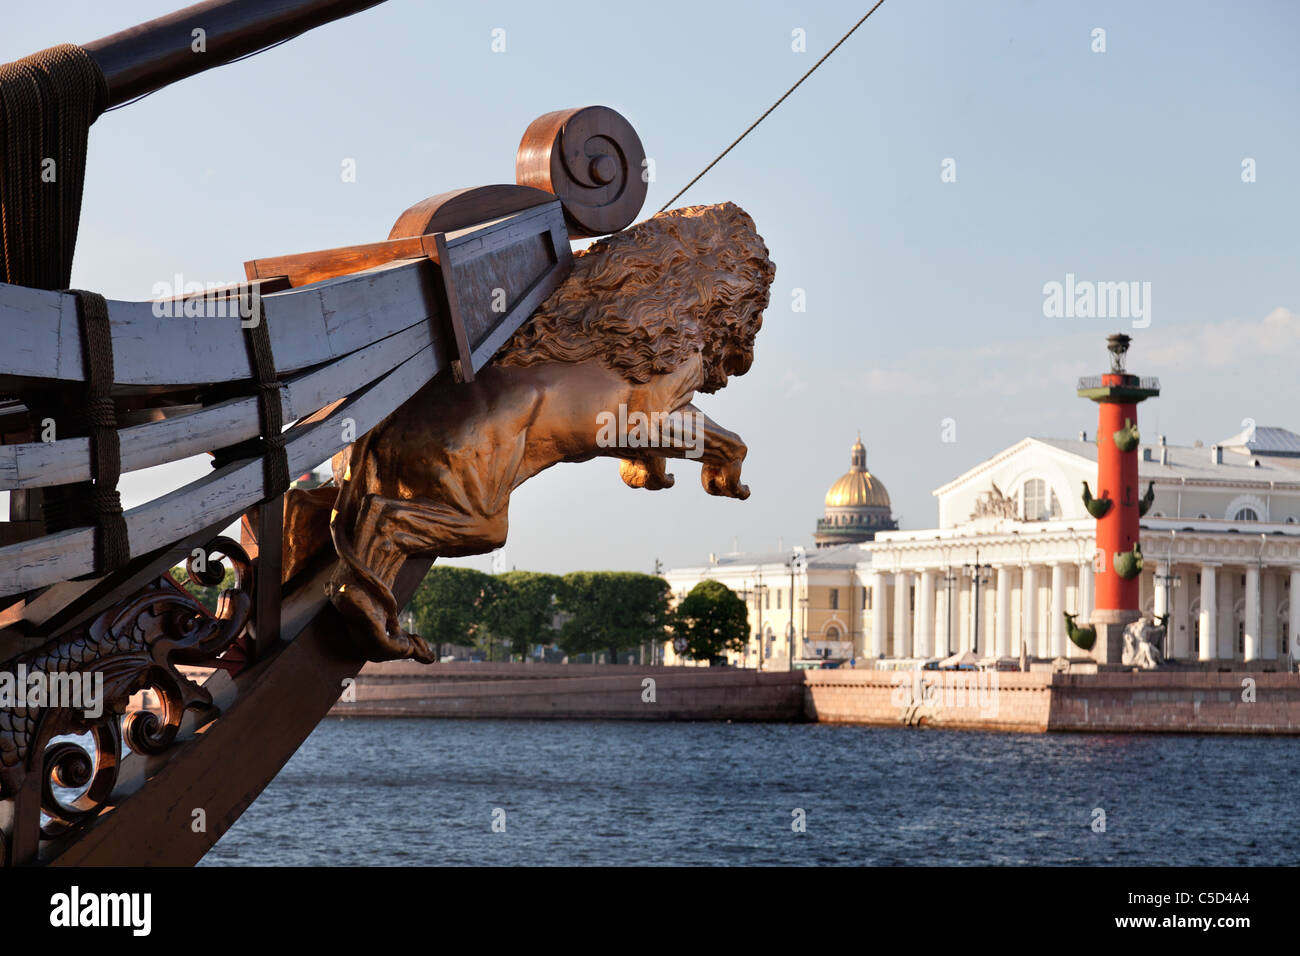 Victory rostrum on the banks of the Neva, Saint Petersburg Russia - Stock Image